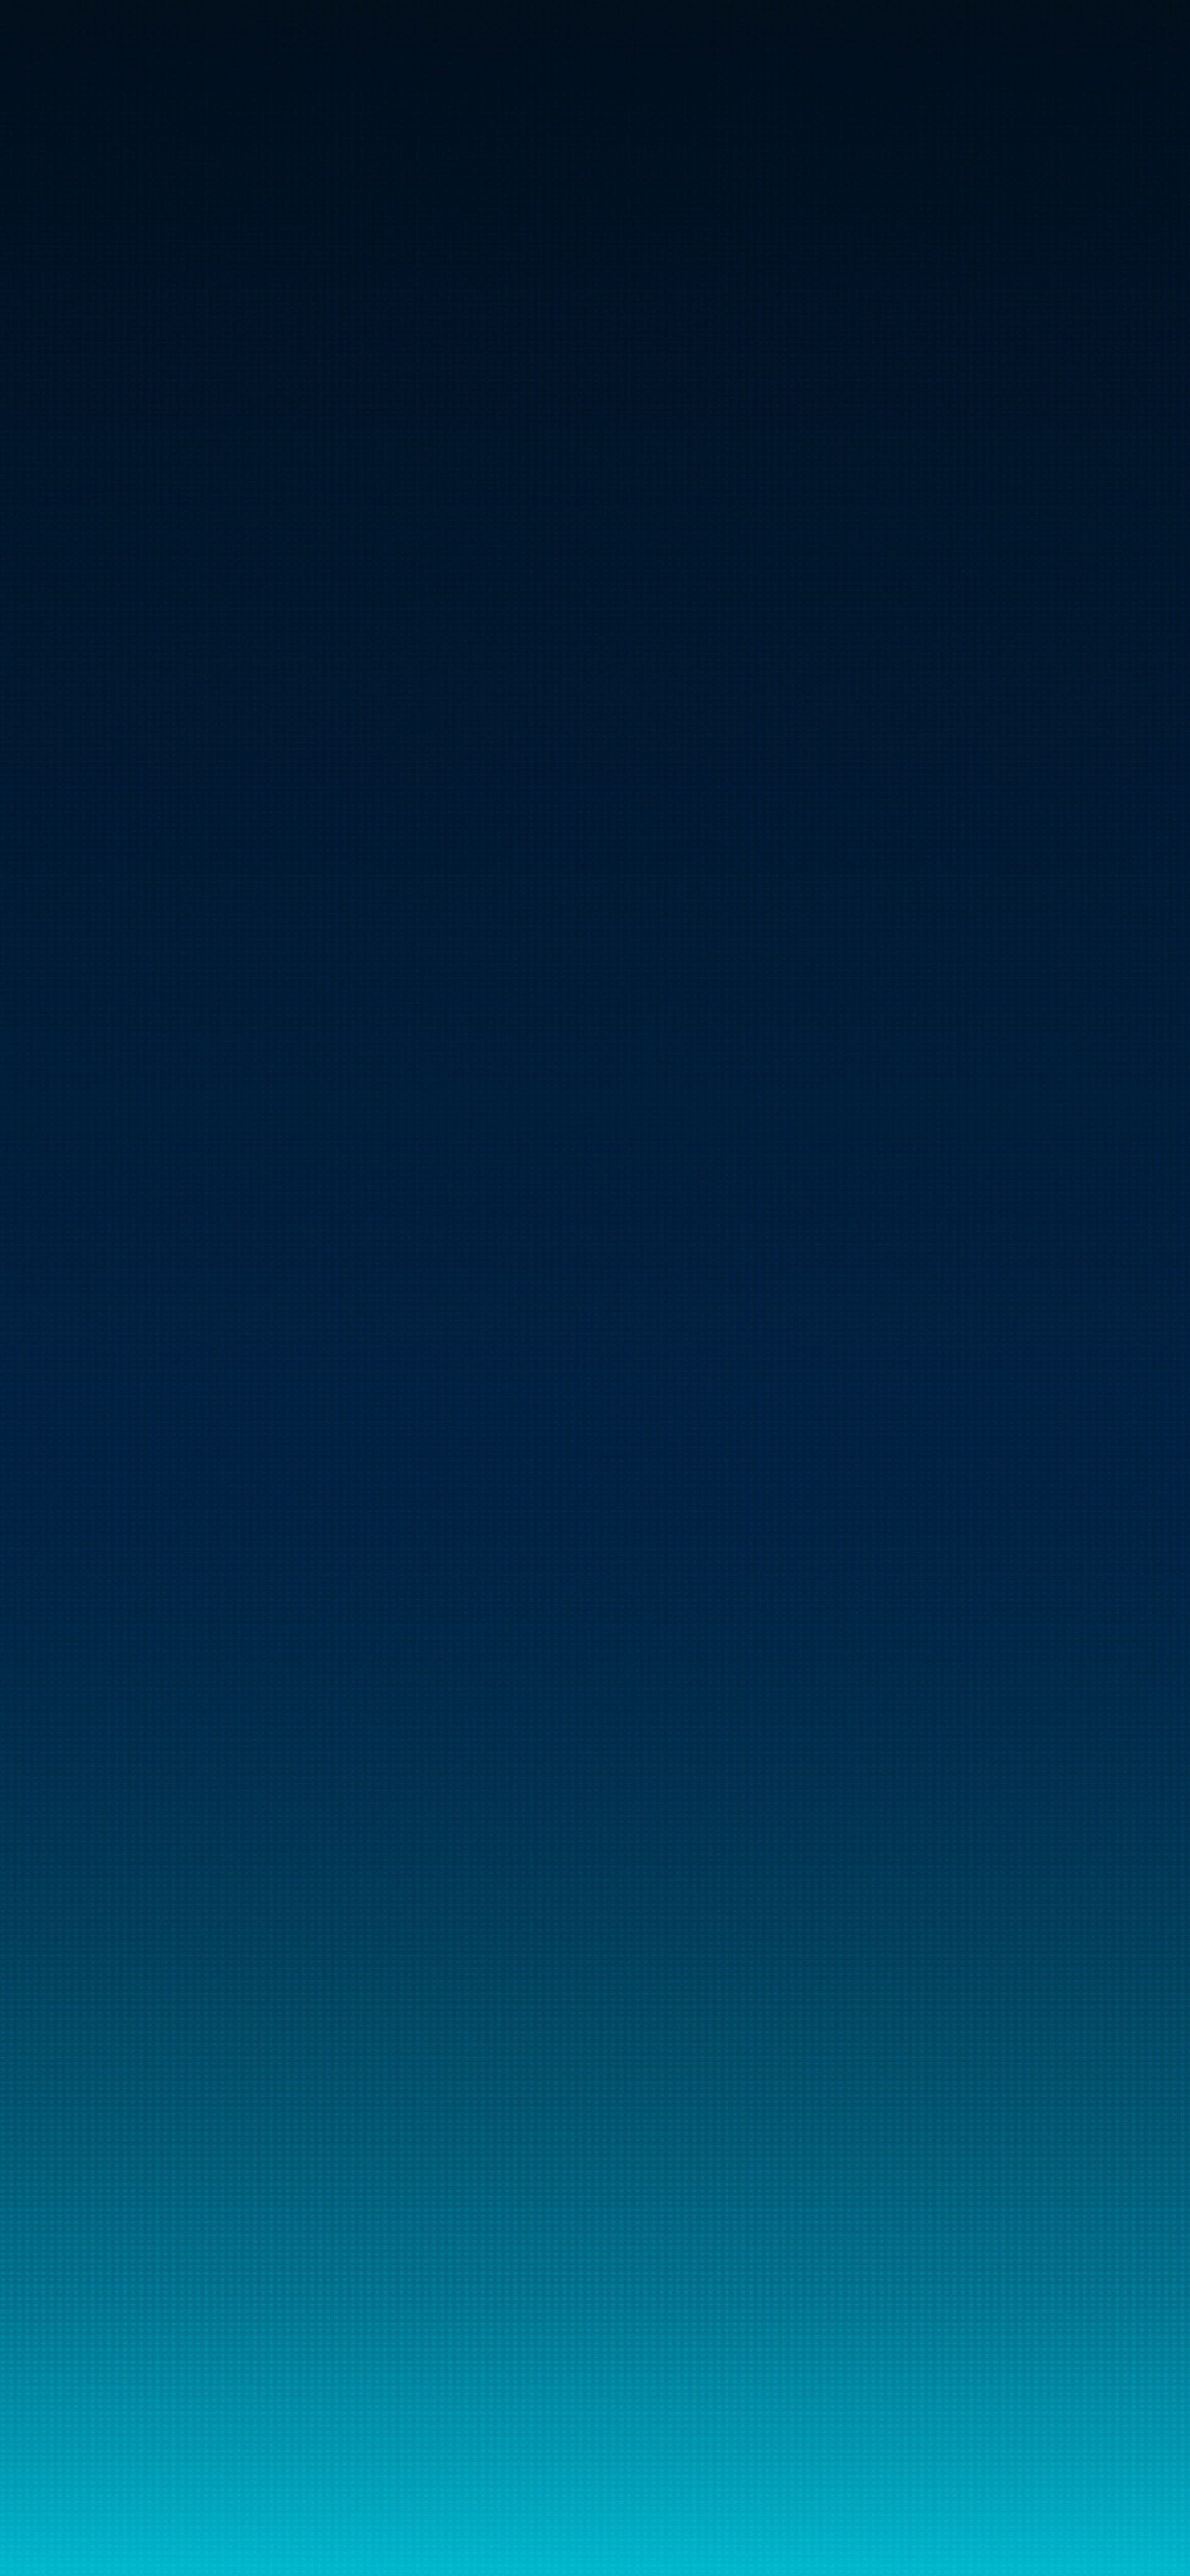 Dark Blue by @EvgeniyZemelko on Twitter | Zollotech Wallpaper in